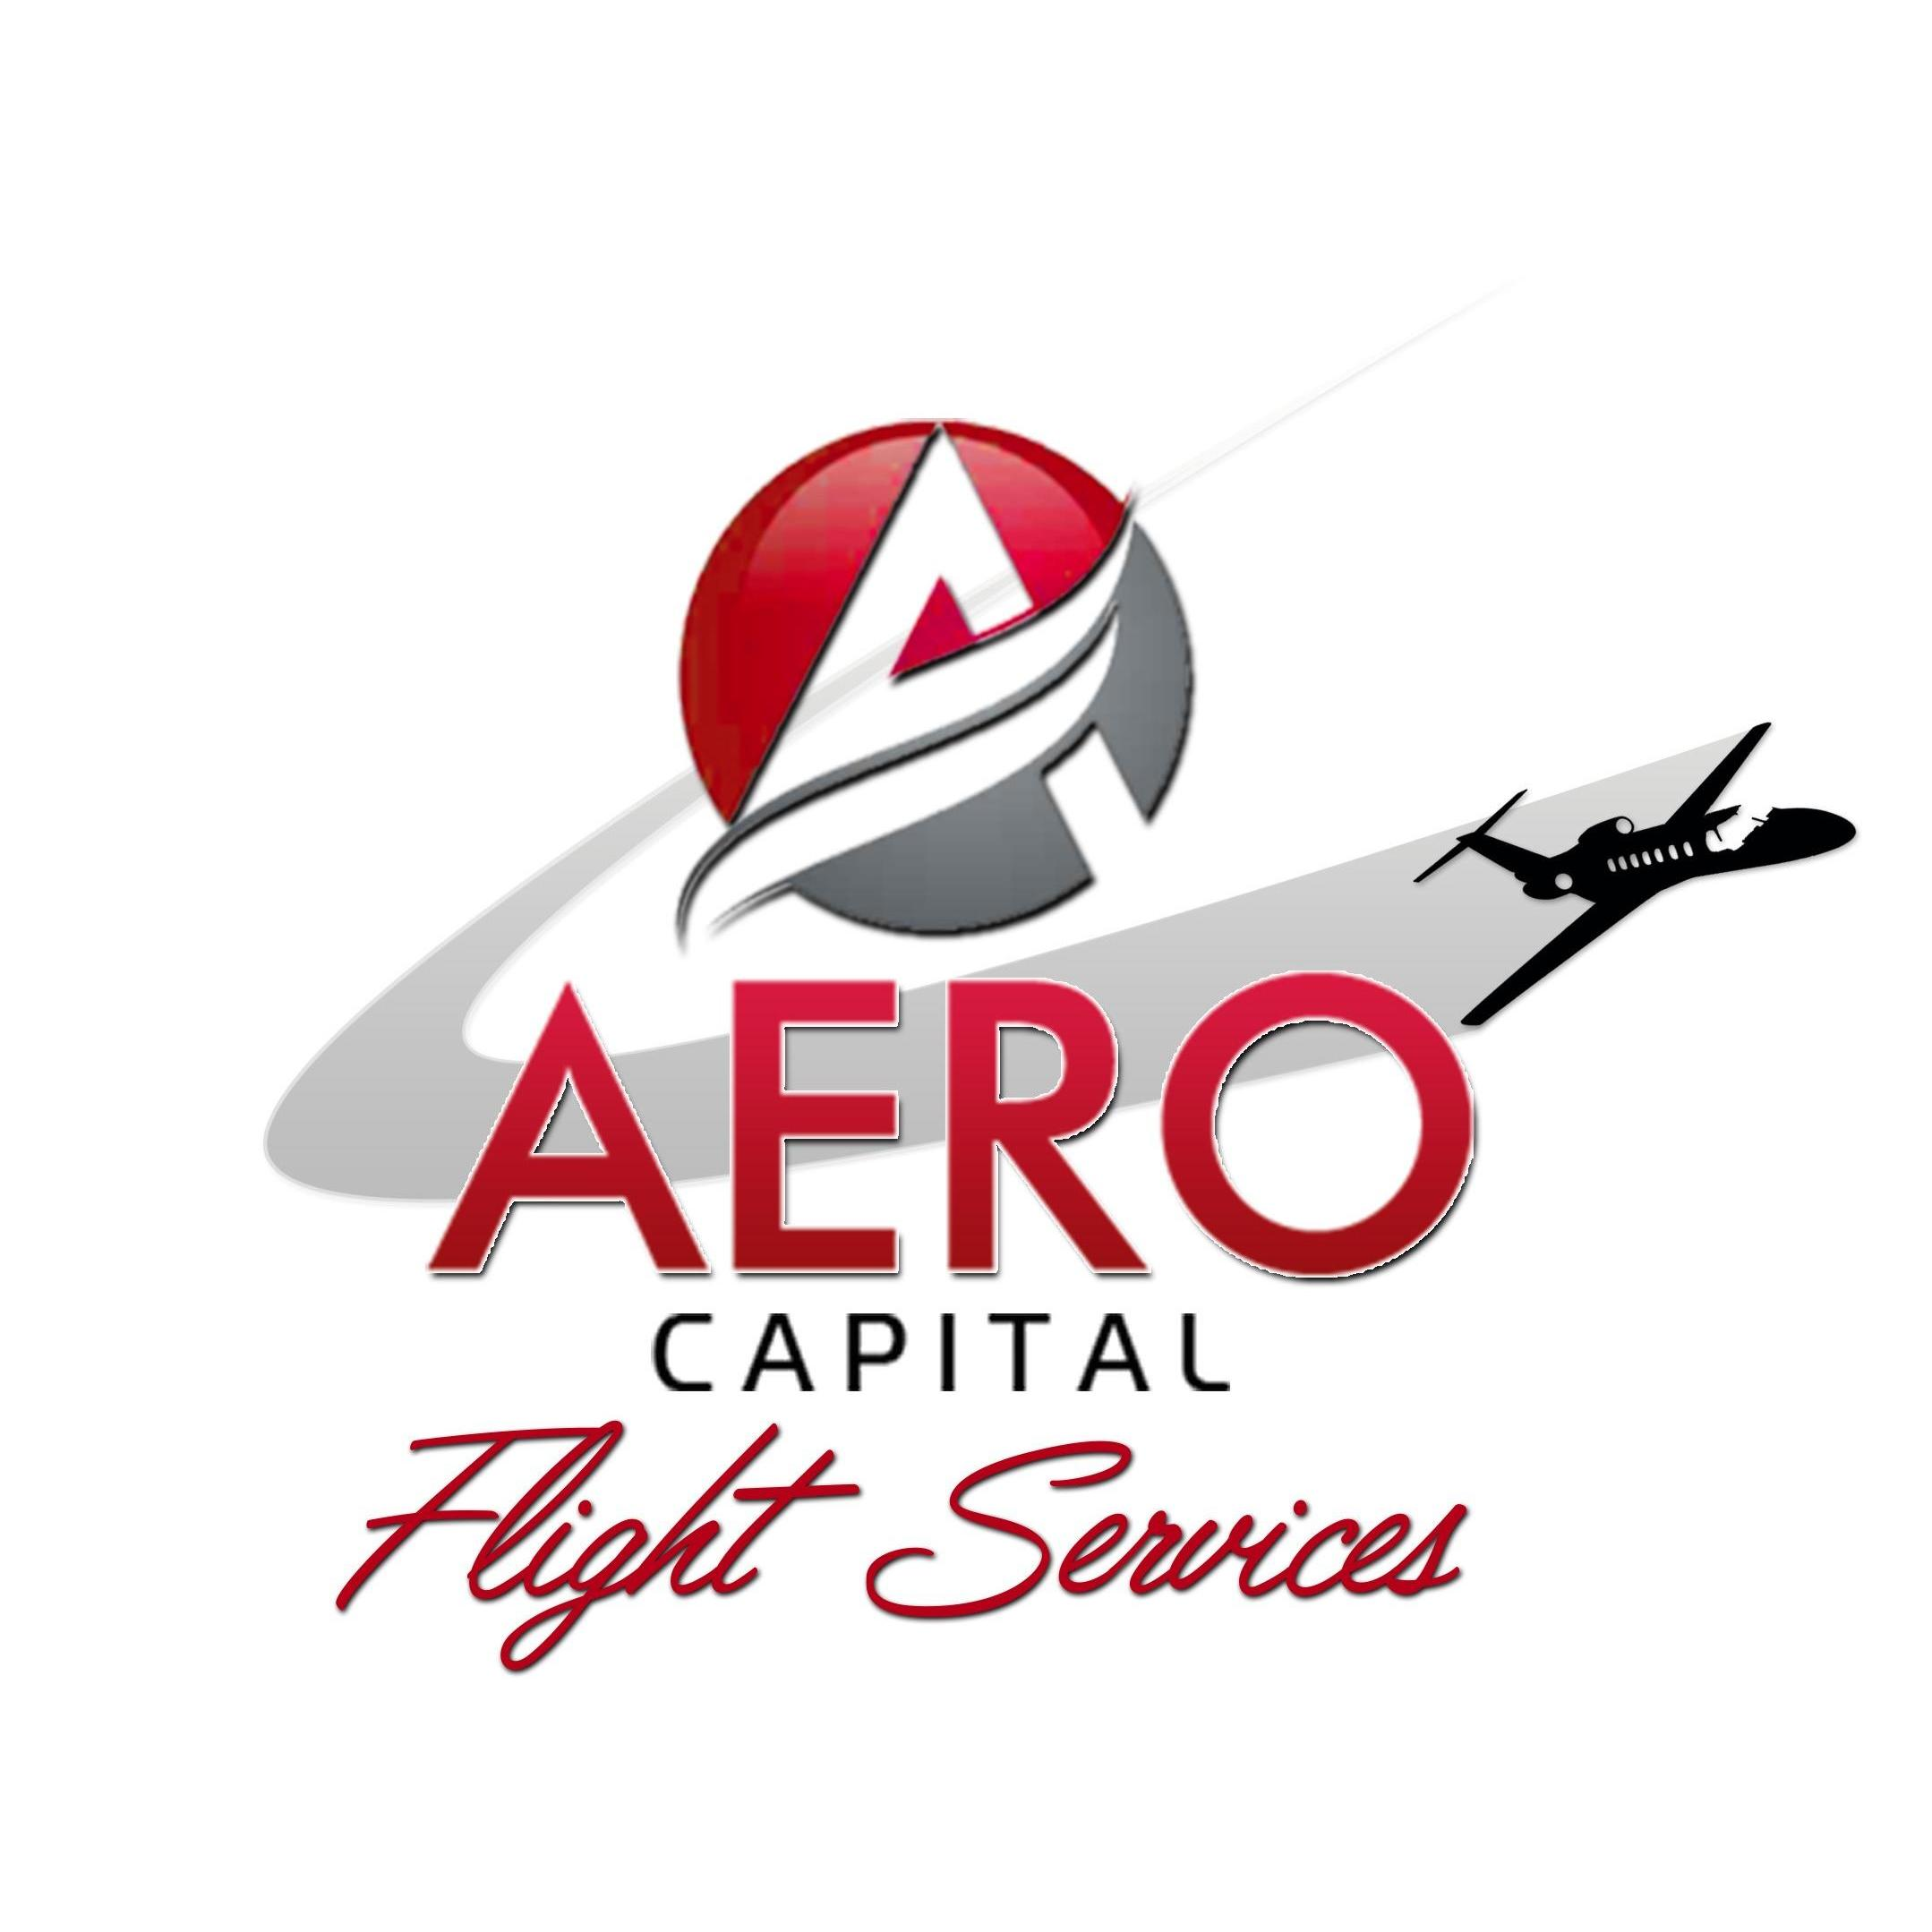 Aero Capital Flight Services - Pensacola, FL 32504 - (850)912-8697 | ShowMeLocal.com